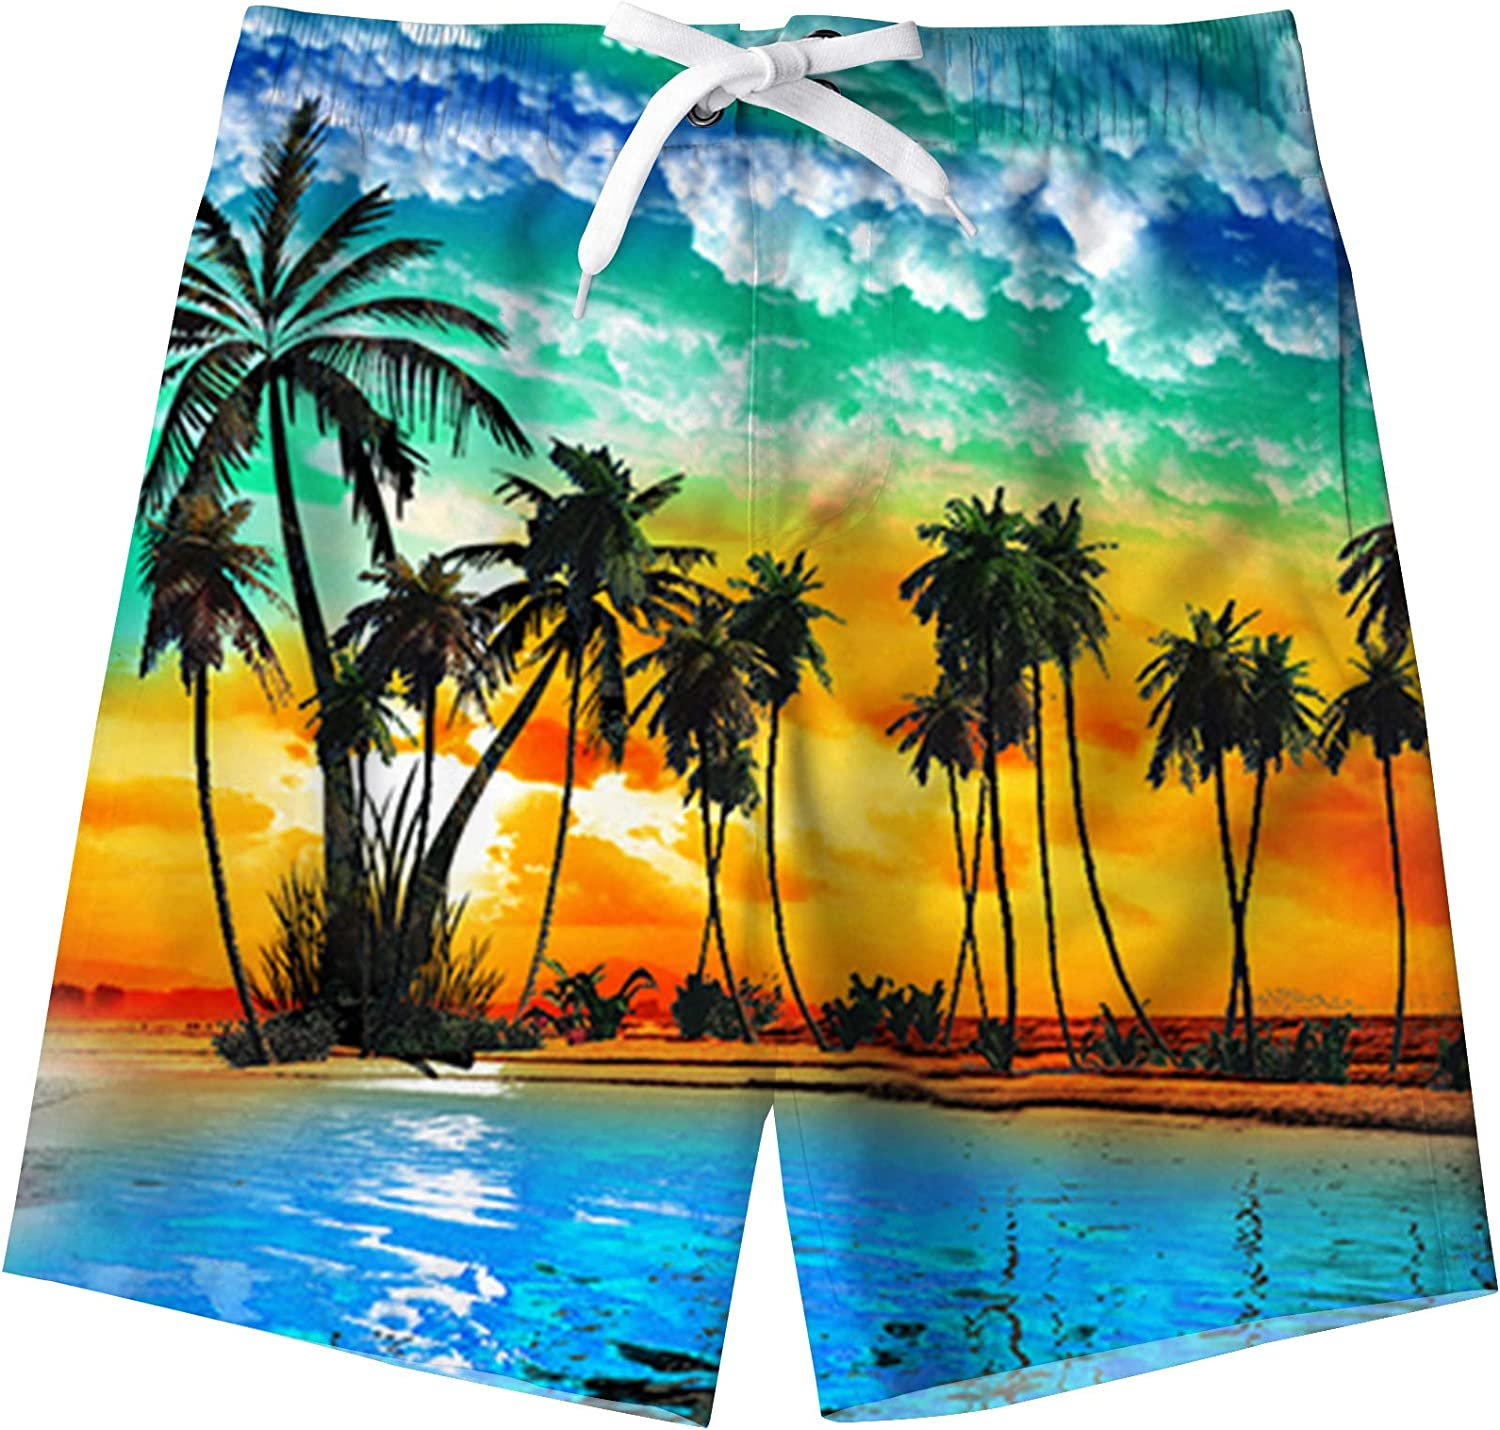 uideazone Boys Teens Swim Trunks Quick Dry Waterproof Surfing Board Shorts Drawstring Elastic Waist with Mesh Lining 5-14T: Clothing